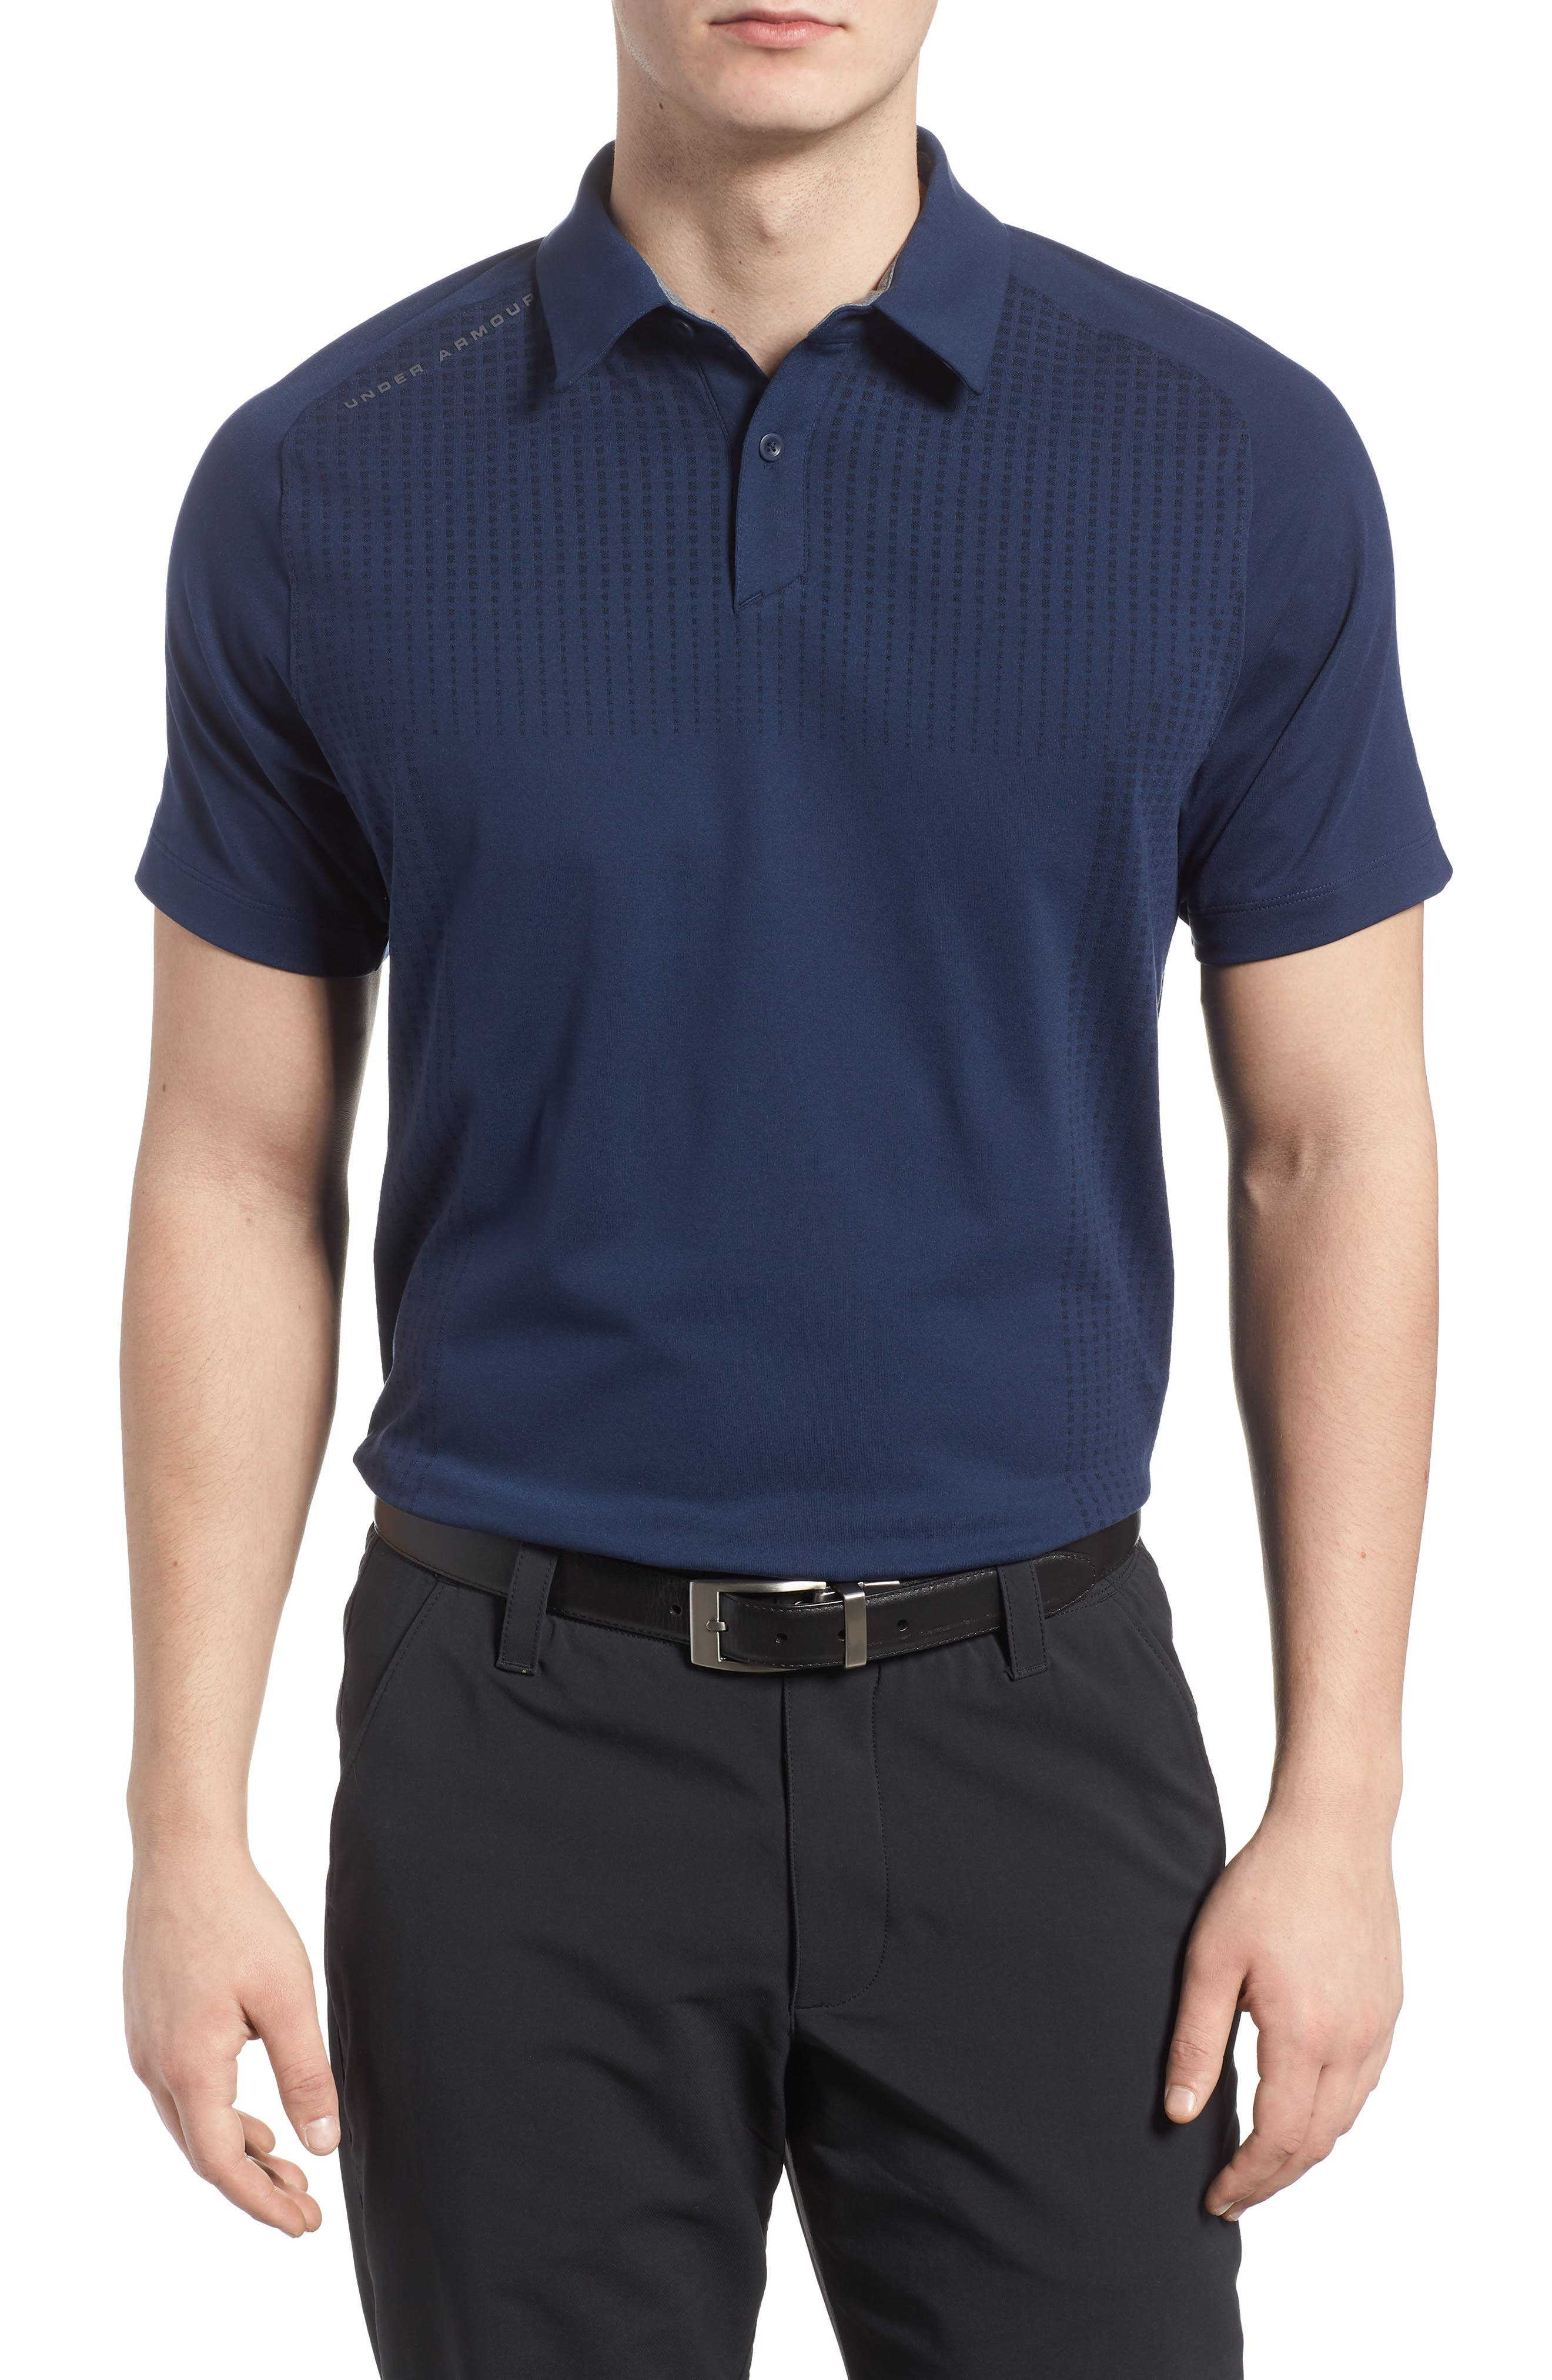 Threadborne Outer Glow Regular Fit Polo Shirt,                         Main,                         color, 408